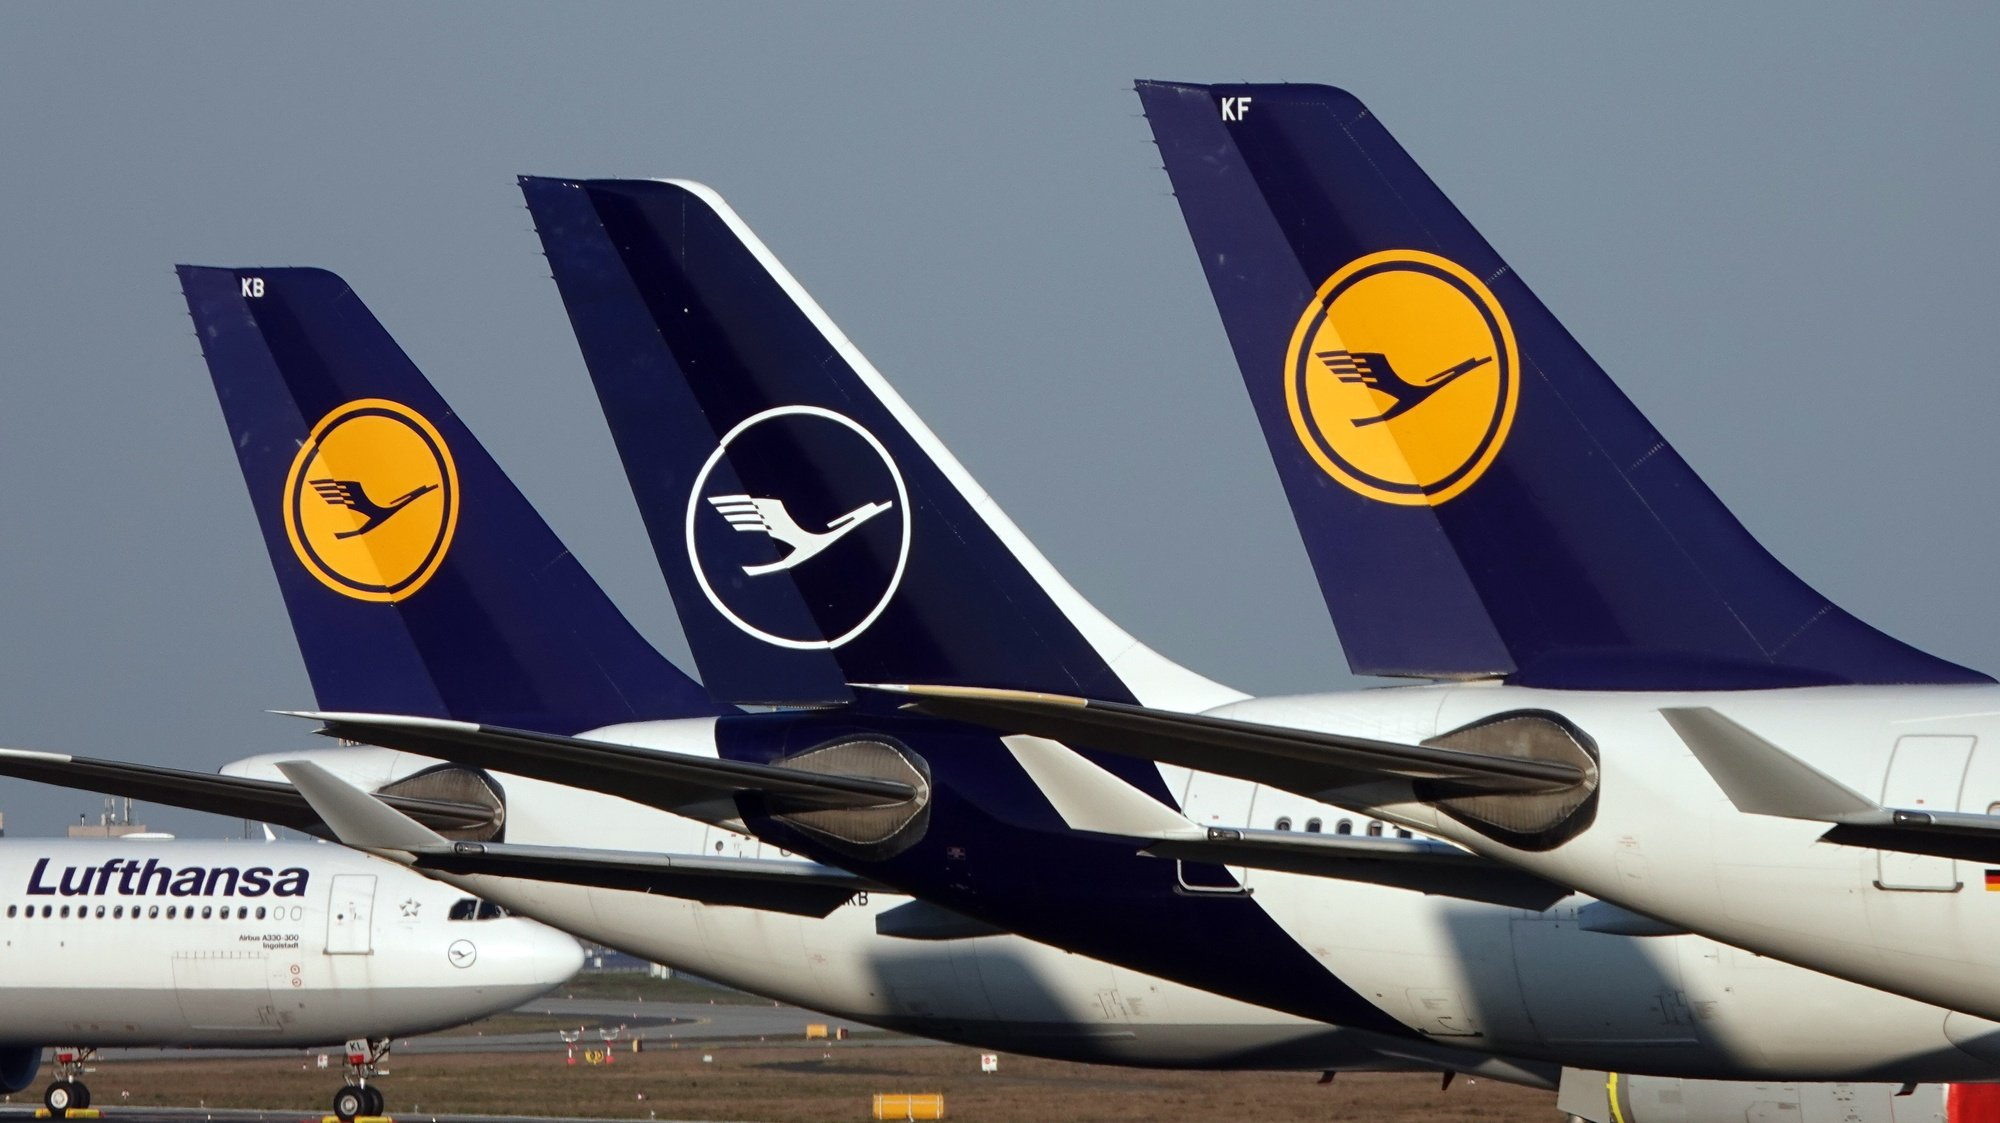 epa08798239 (FILE) - Lufthansa passenger planes parked at Frankfurt airport's northern runway in Frankfurt, Germany, 25 March 2020 at the height of Covid-19, coronavirus pandemic and restrictions (reissued 04 November 2020). Lufthansa Group are due to publish their nine month figures of 2020 on 05 November 2020.  EPA/MAURITZ ANTIN *** Local Caption *** 56160907